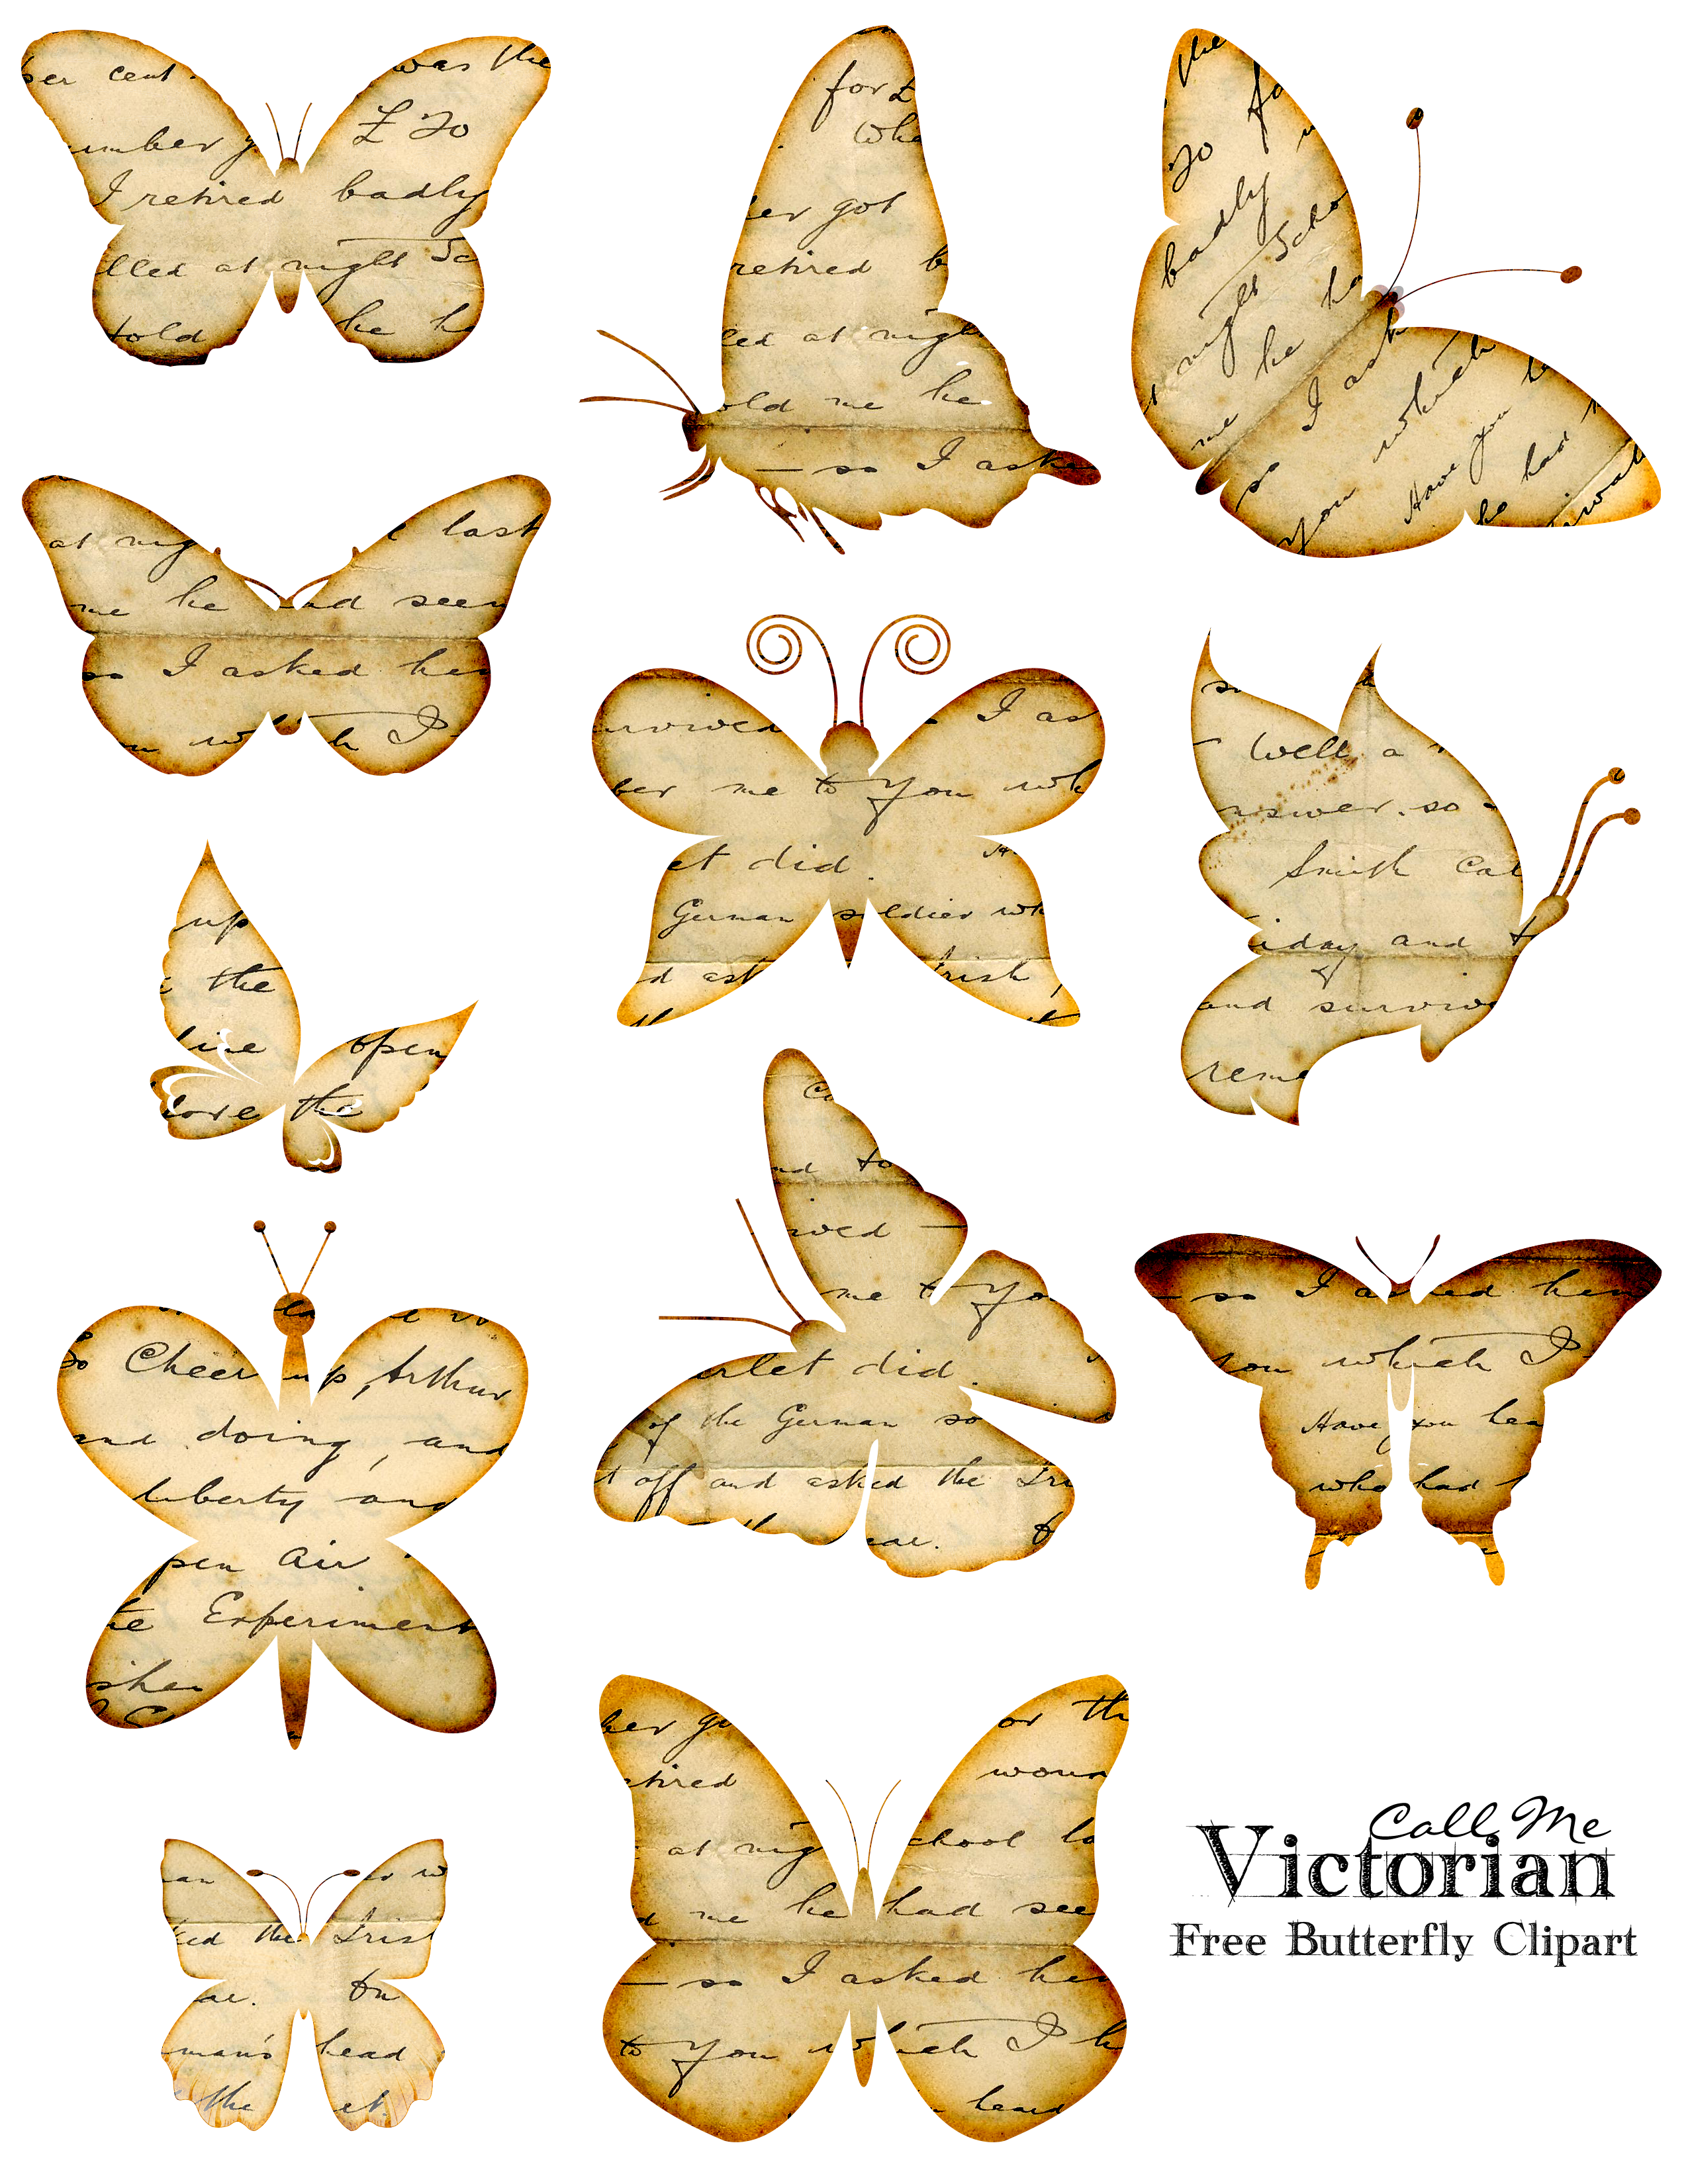 Free butterfly overlay clipart clip free download Free Butterfly Clipart Images - Distressed Handwriting Overlay ... clip free download